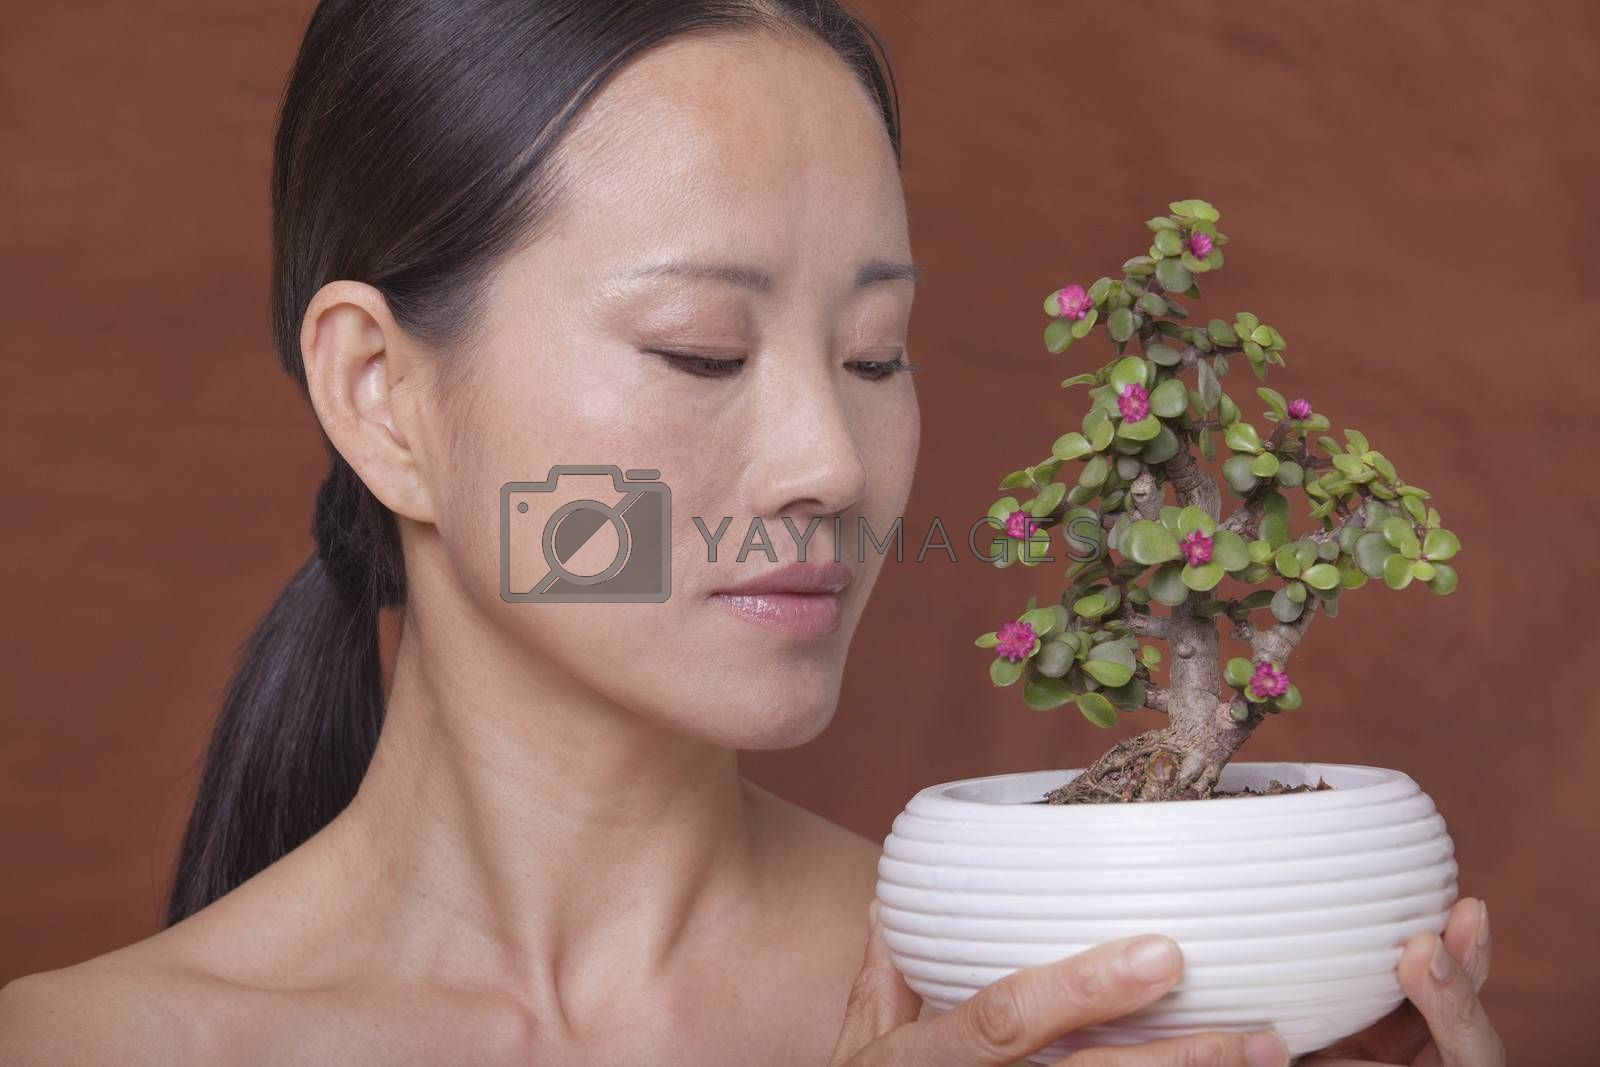 Shirtless woman holding and looking down at a small plant in a flower pot, studio shot